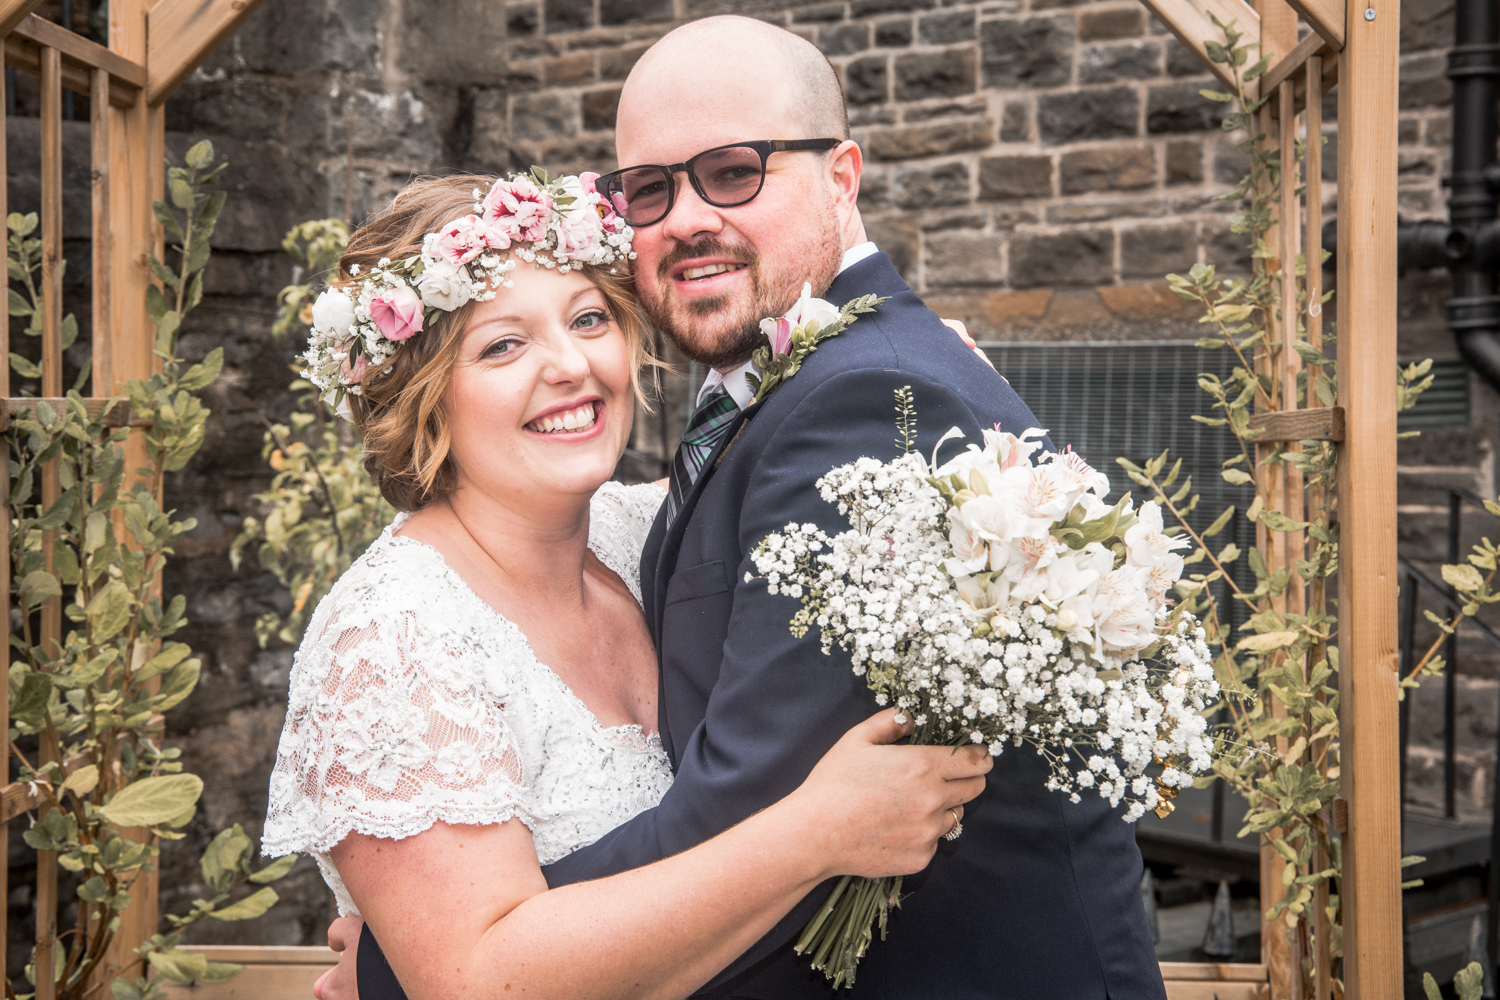 couple's wedding photography in swansea and south wales